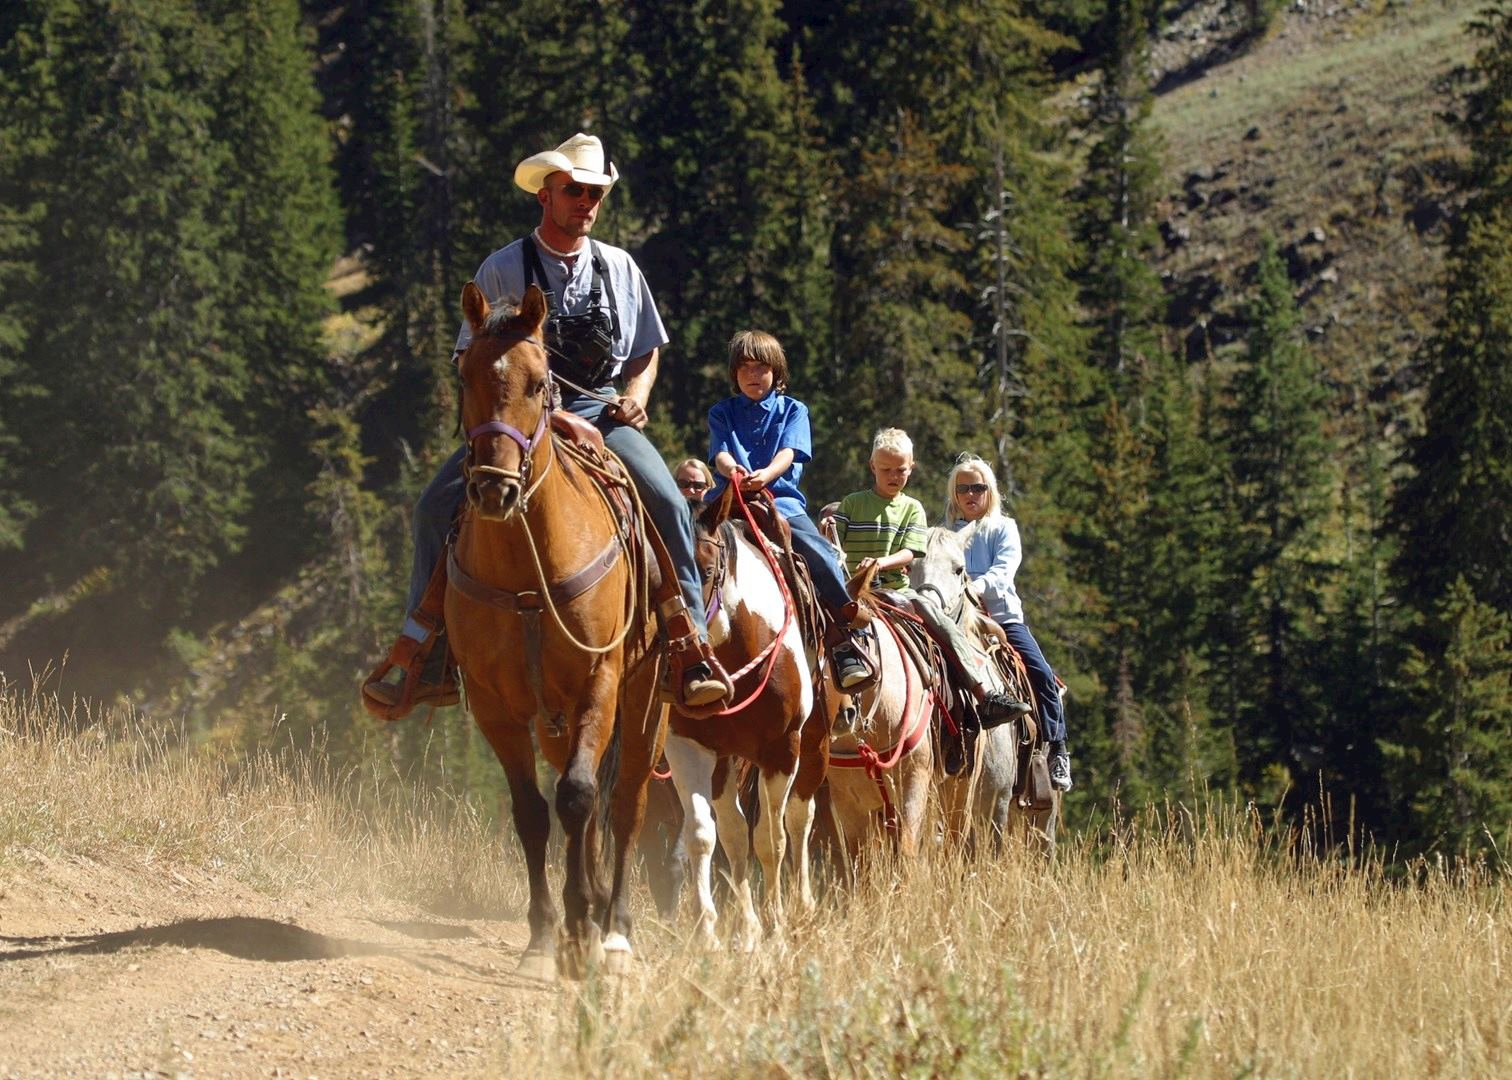 Horseback Riding and Riding Tours ... - Salt Lake City, Utah